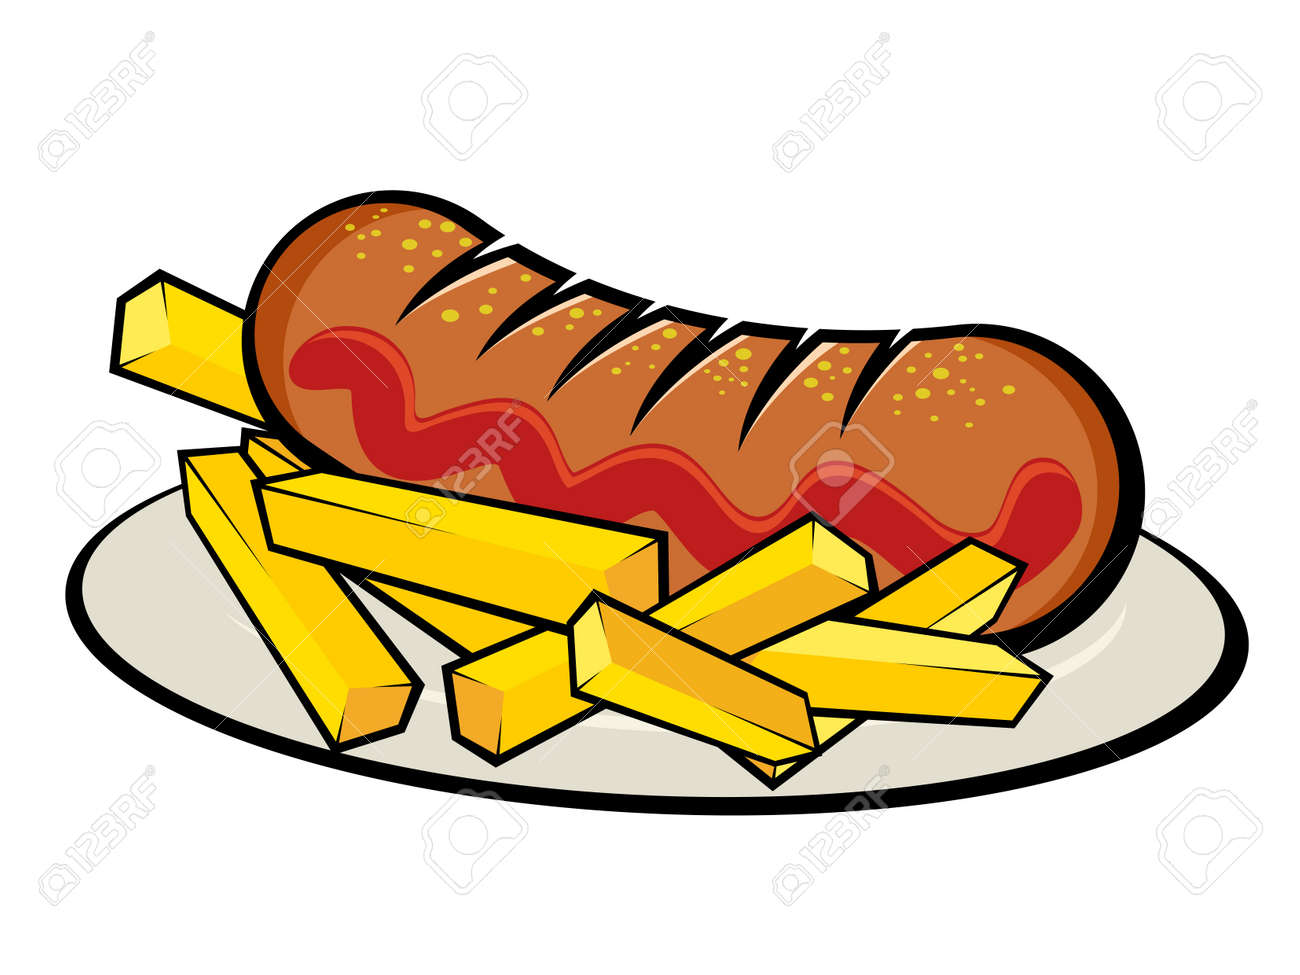 illustration of a german currywurst with french fries Standard-Bild - 20111642